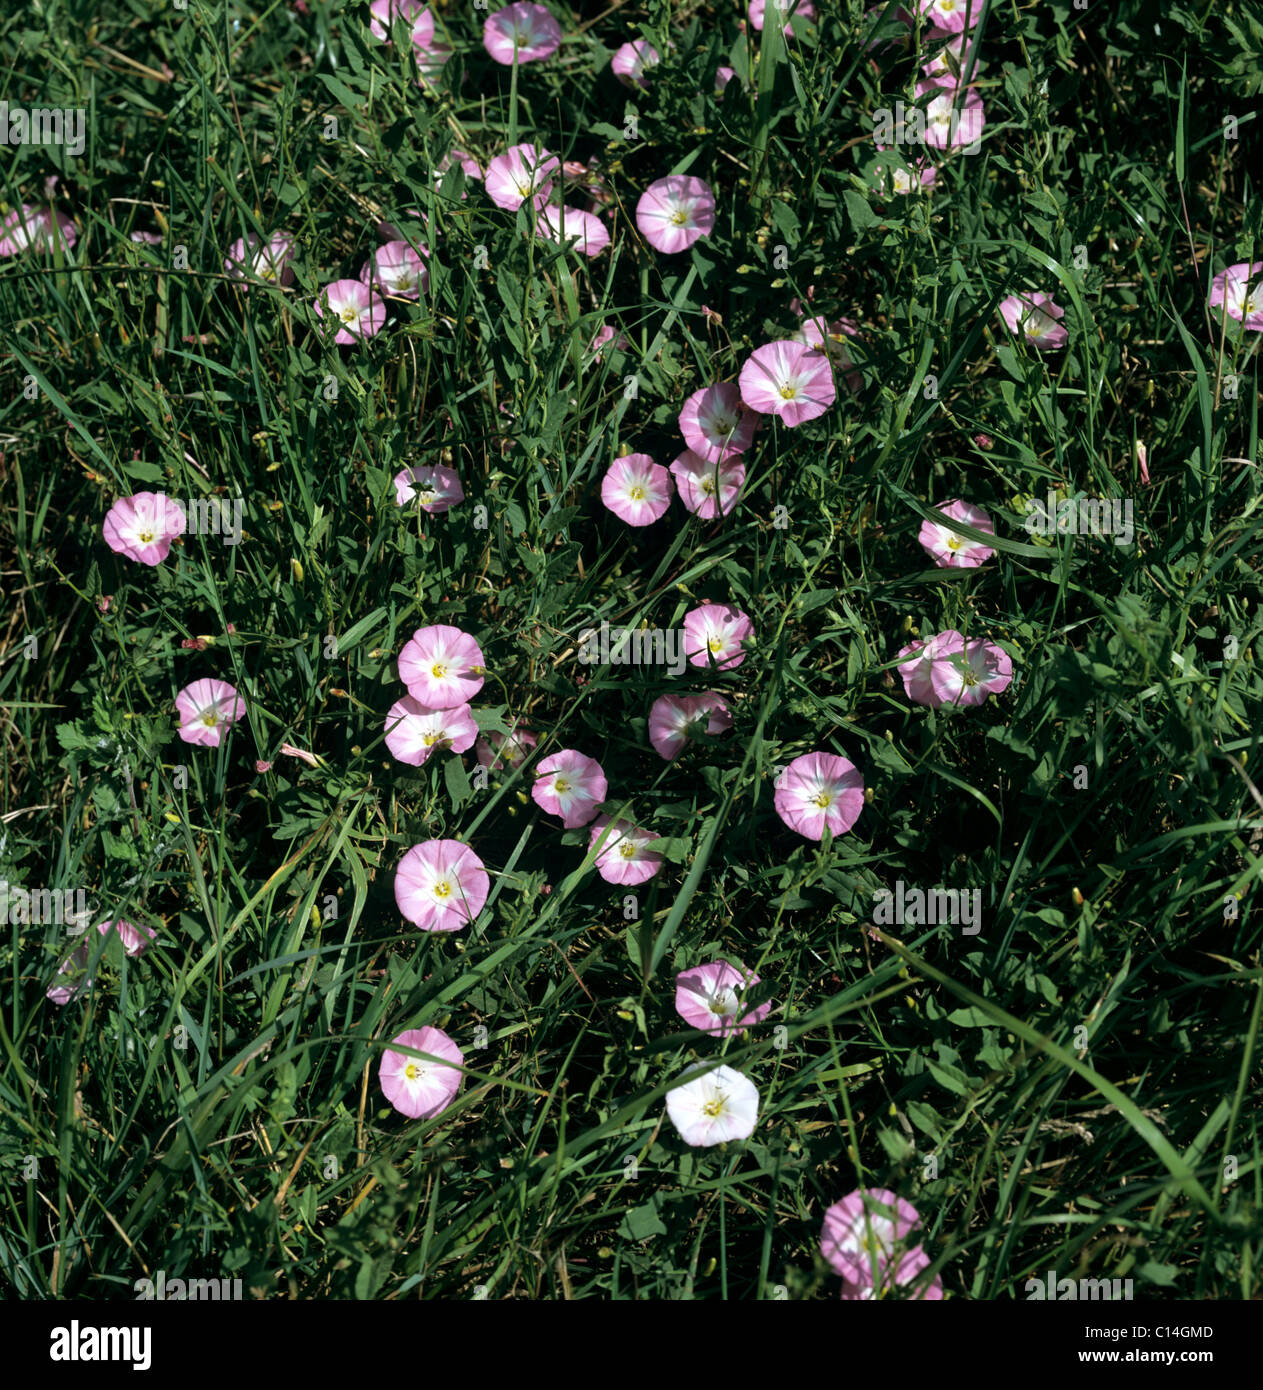 Field bindweed (Convolvulus arvensis) plants flowering in grassland - Stock Image